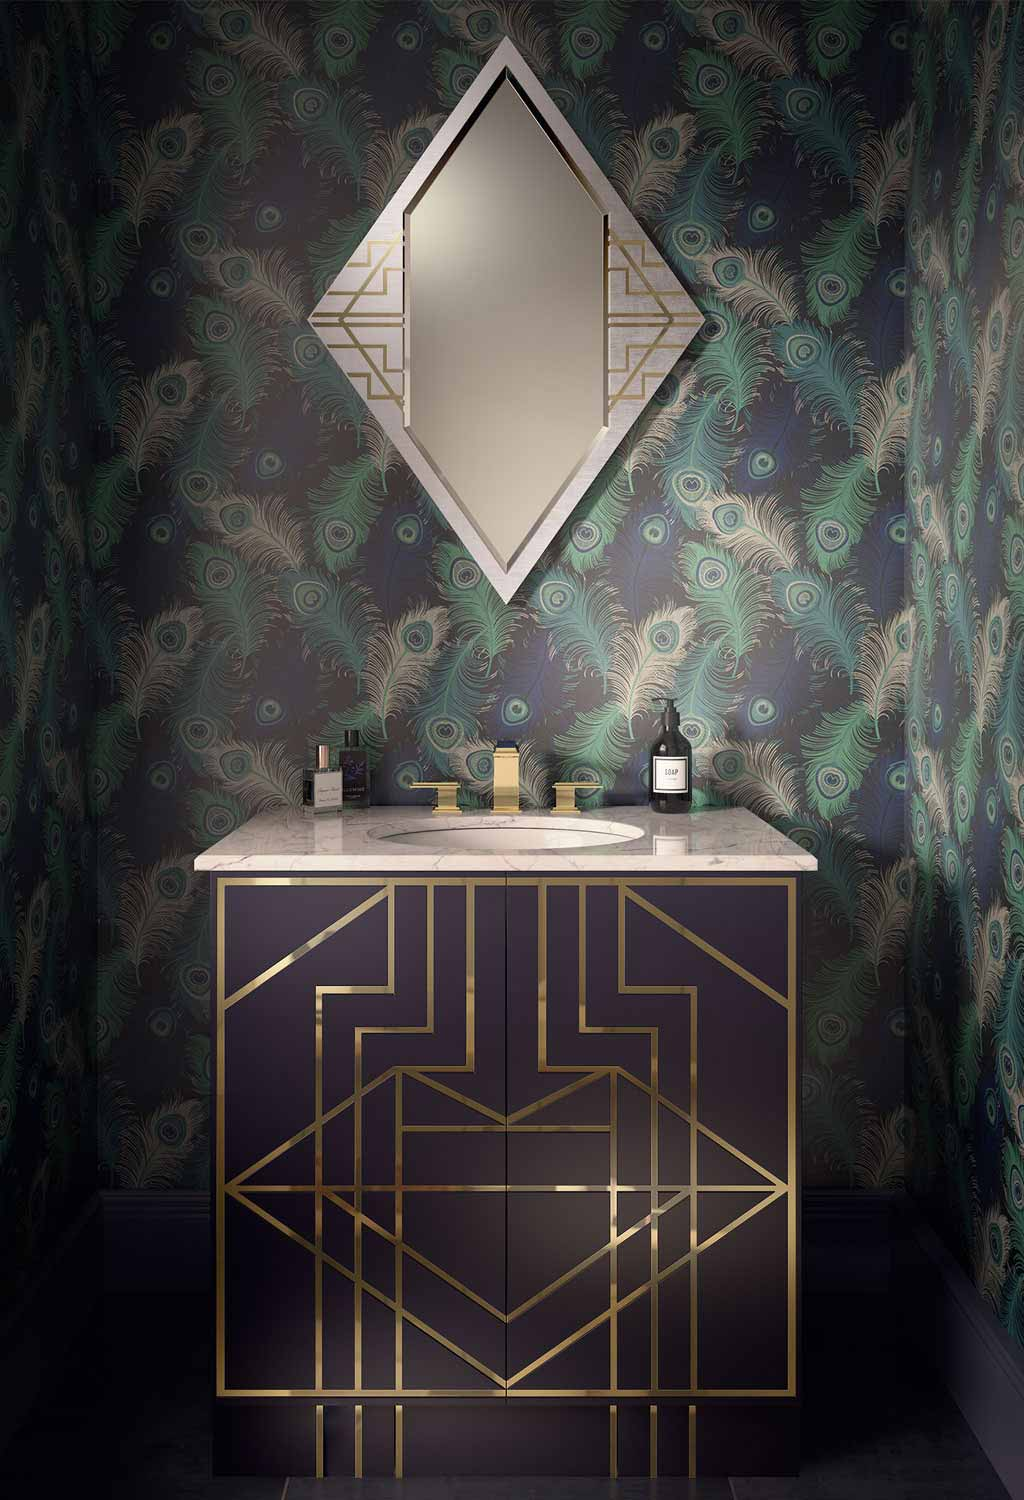 Merveilleux Justin Van Breda | Bespoke Bathroom Furniture | From C.P. Hart